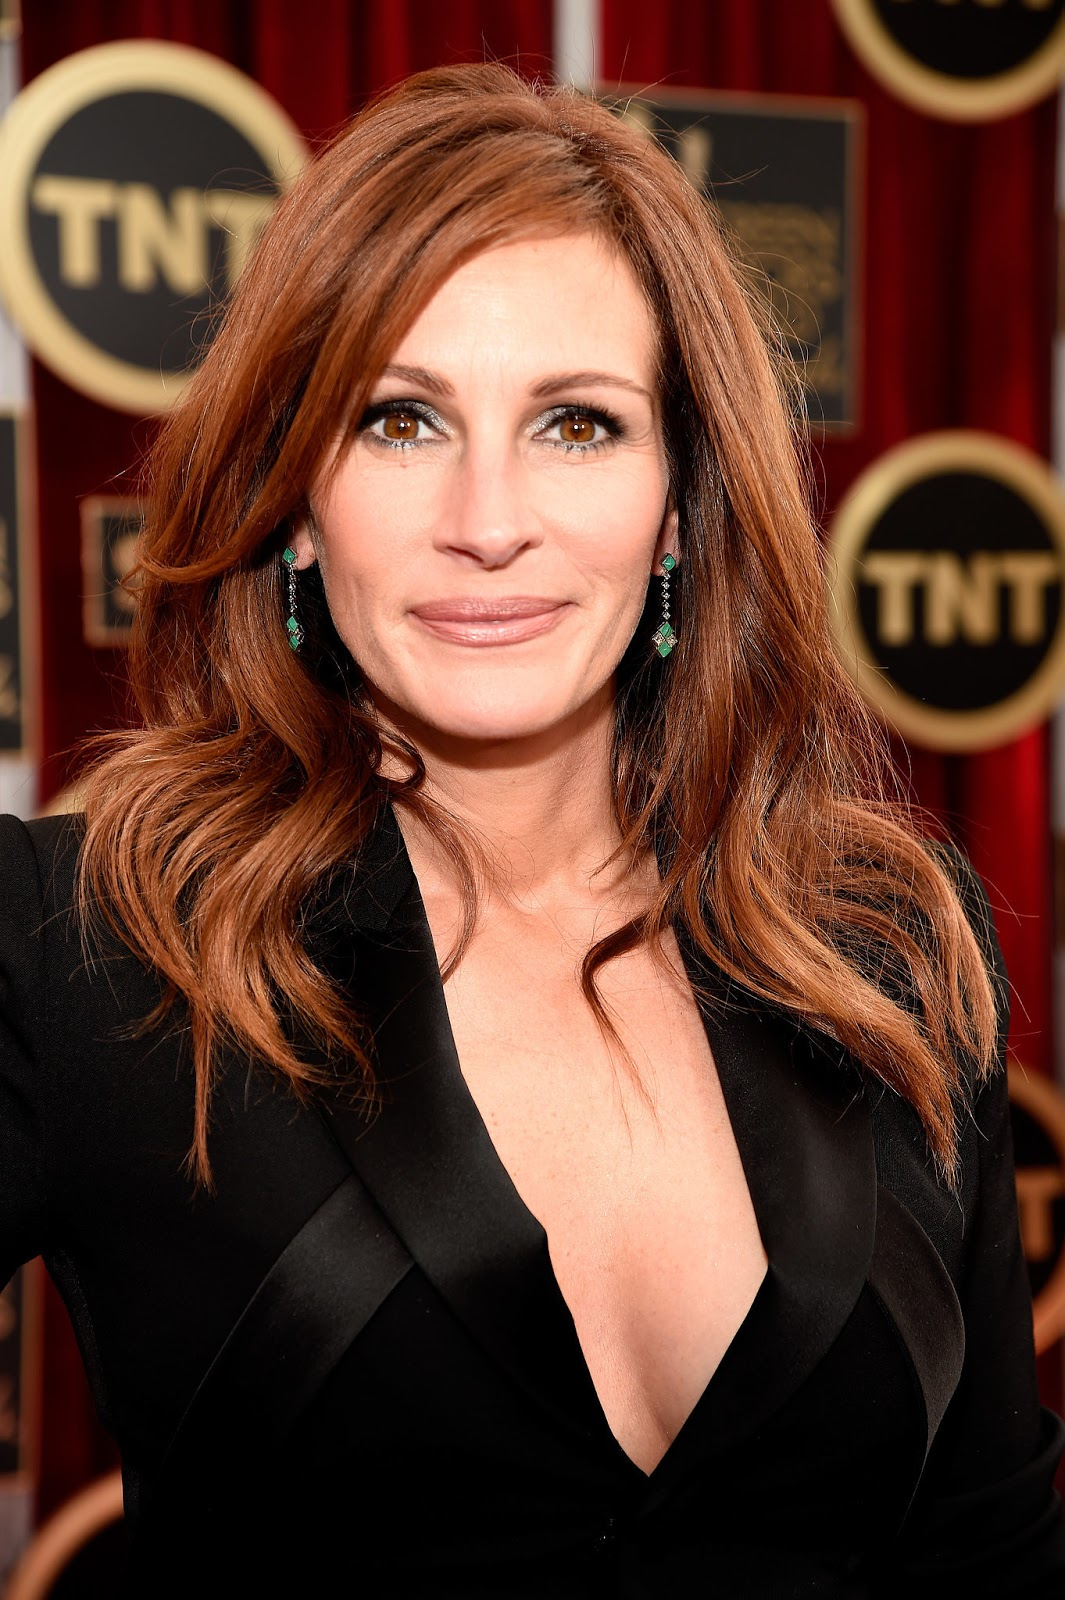 Julia Roberts Biography, Profile, Photos, Birthday, Height ...